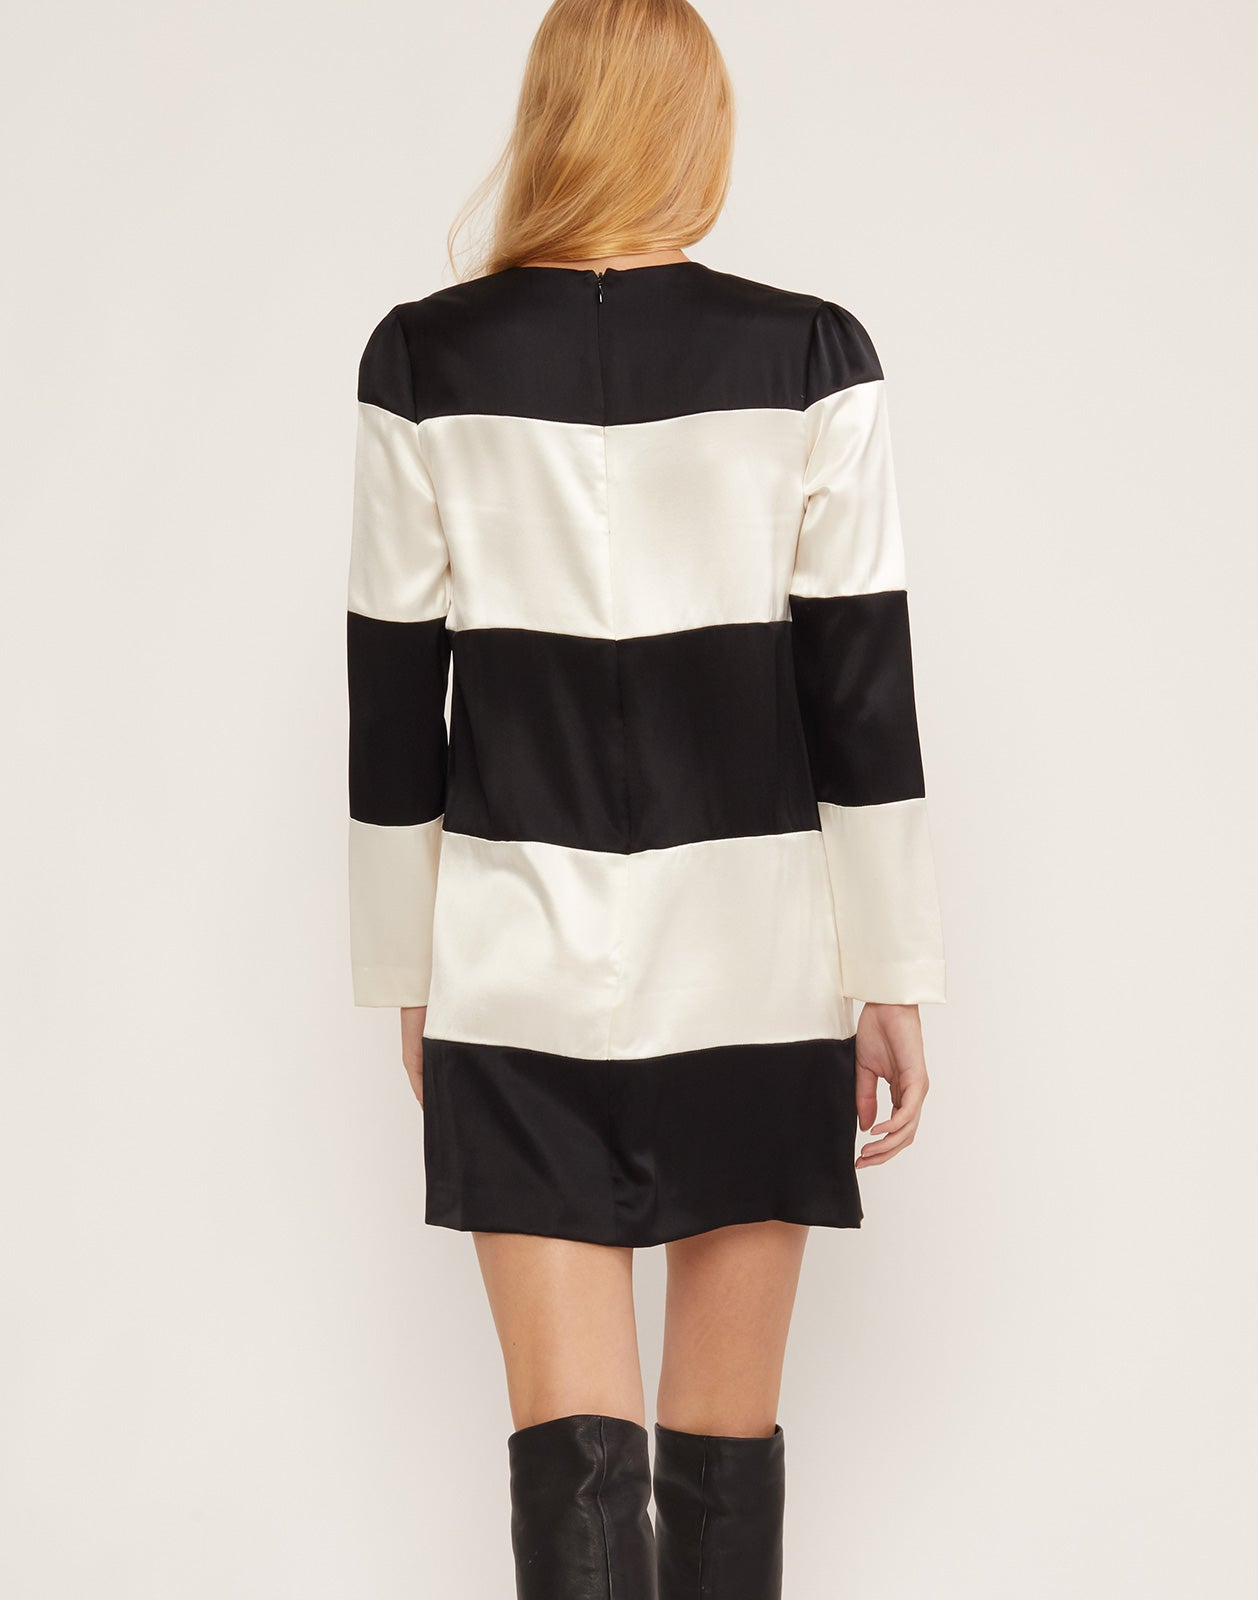 Back view of Brooklyn black and white striped shift dress.